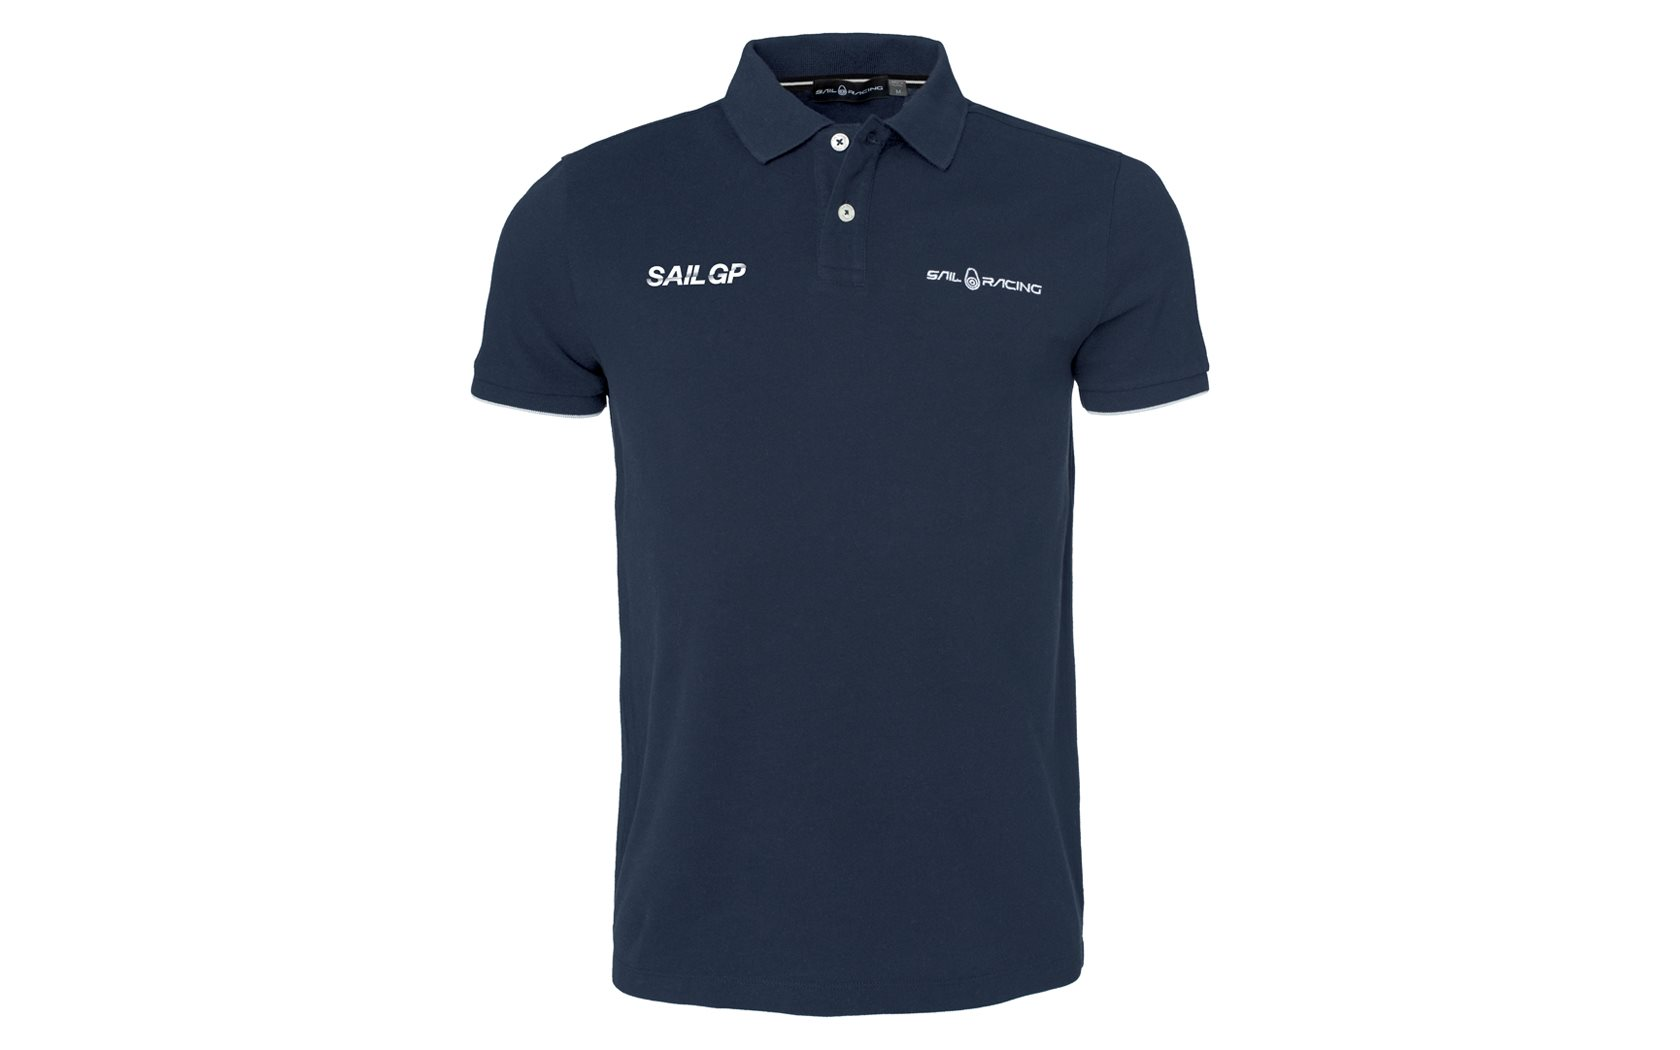 SAILGP LOGO POLO